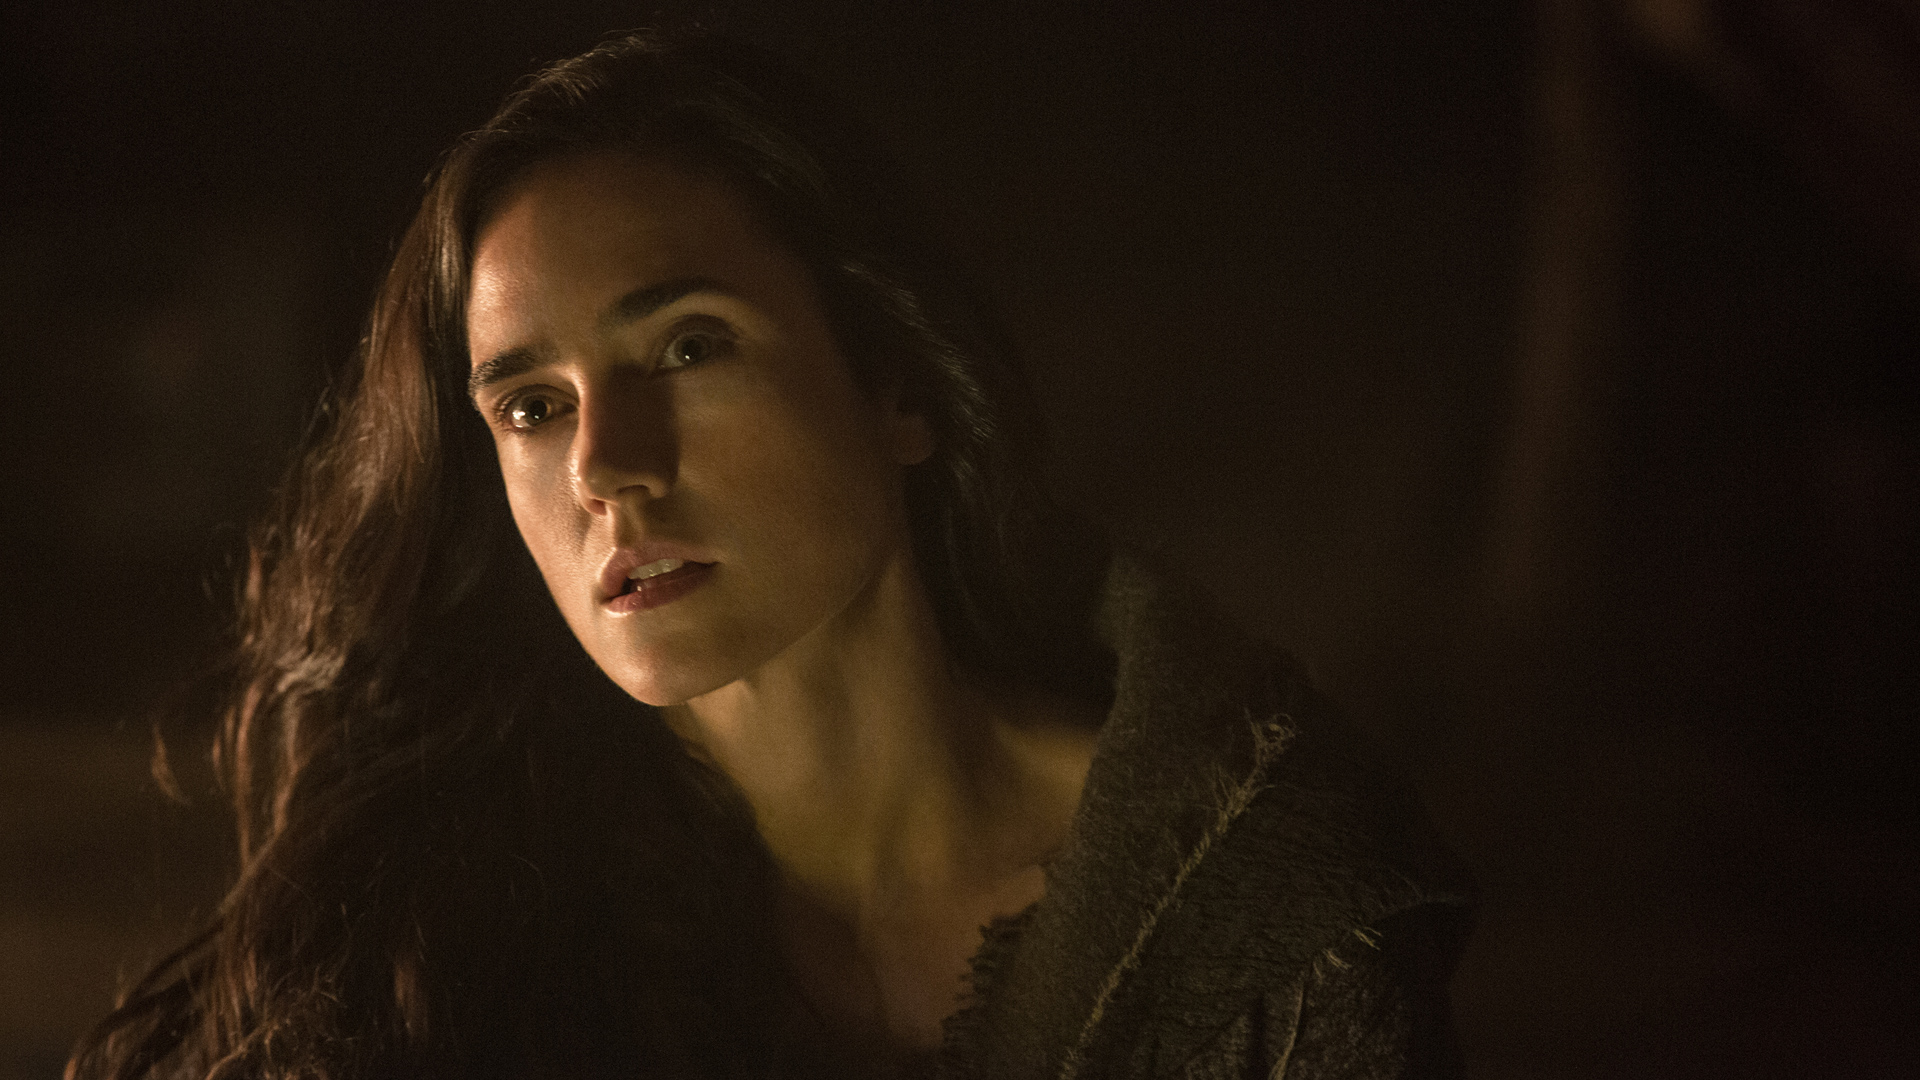 jennifer connelly as naameh in noah movie hd 2014 wallpaper girl ...